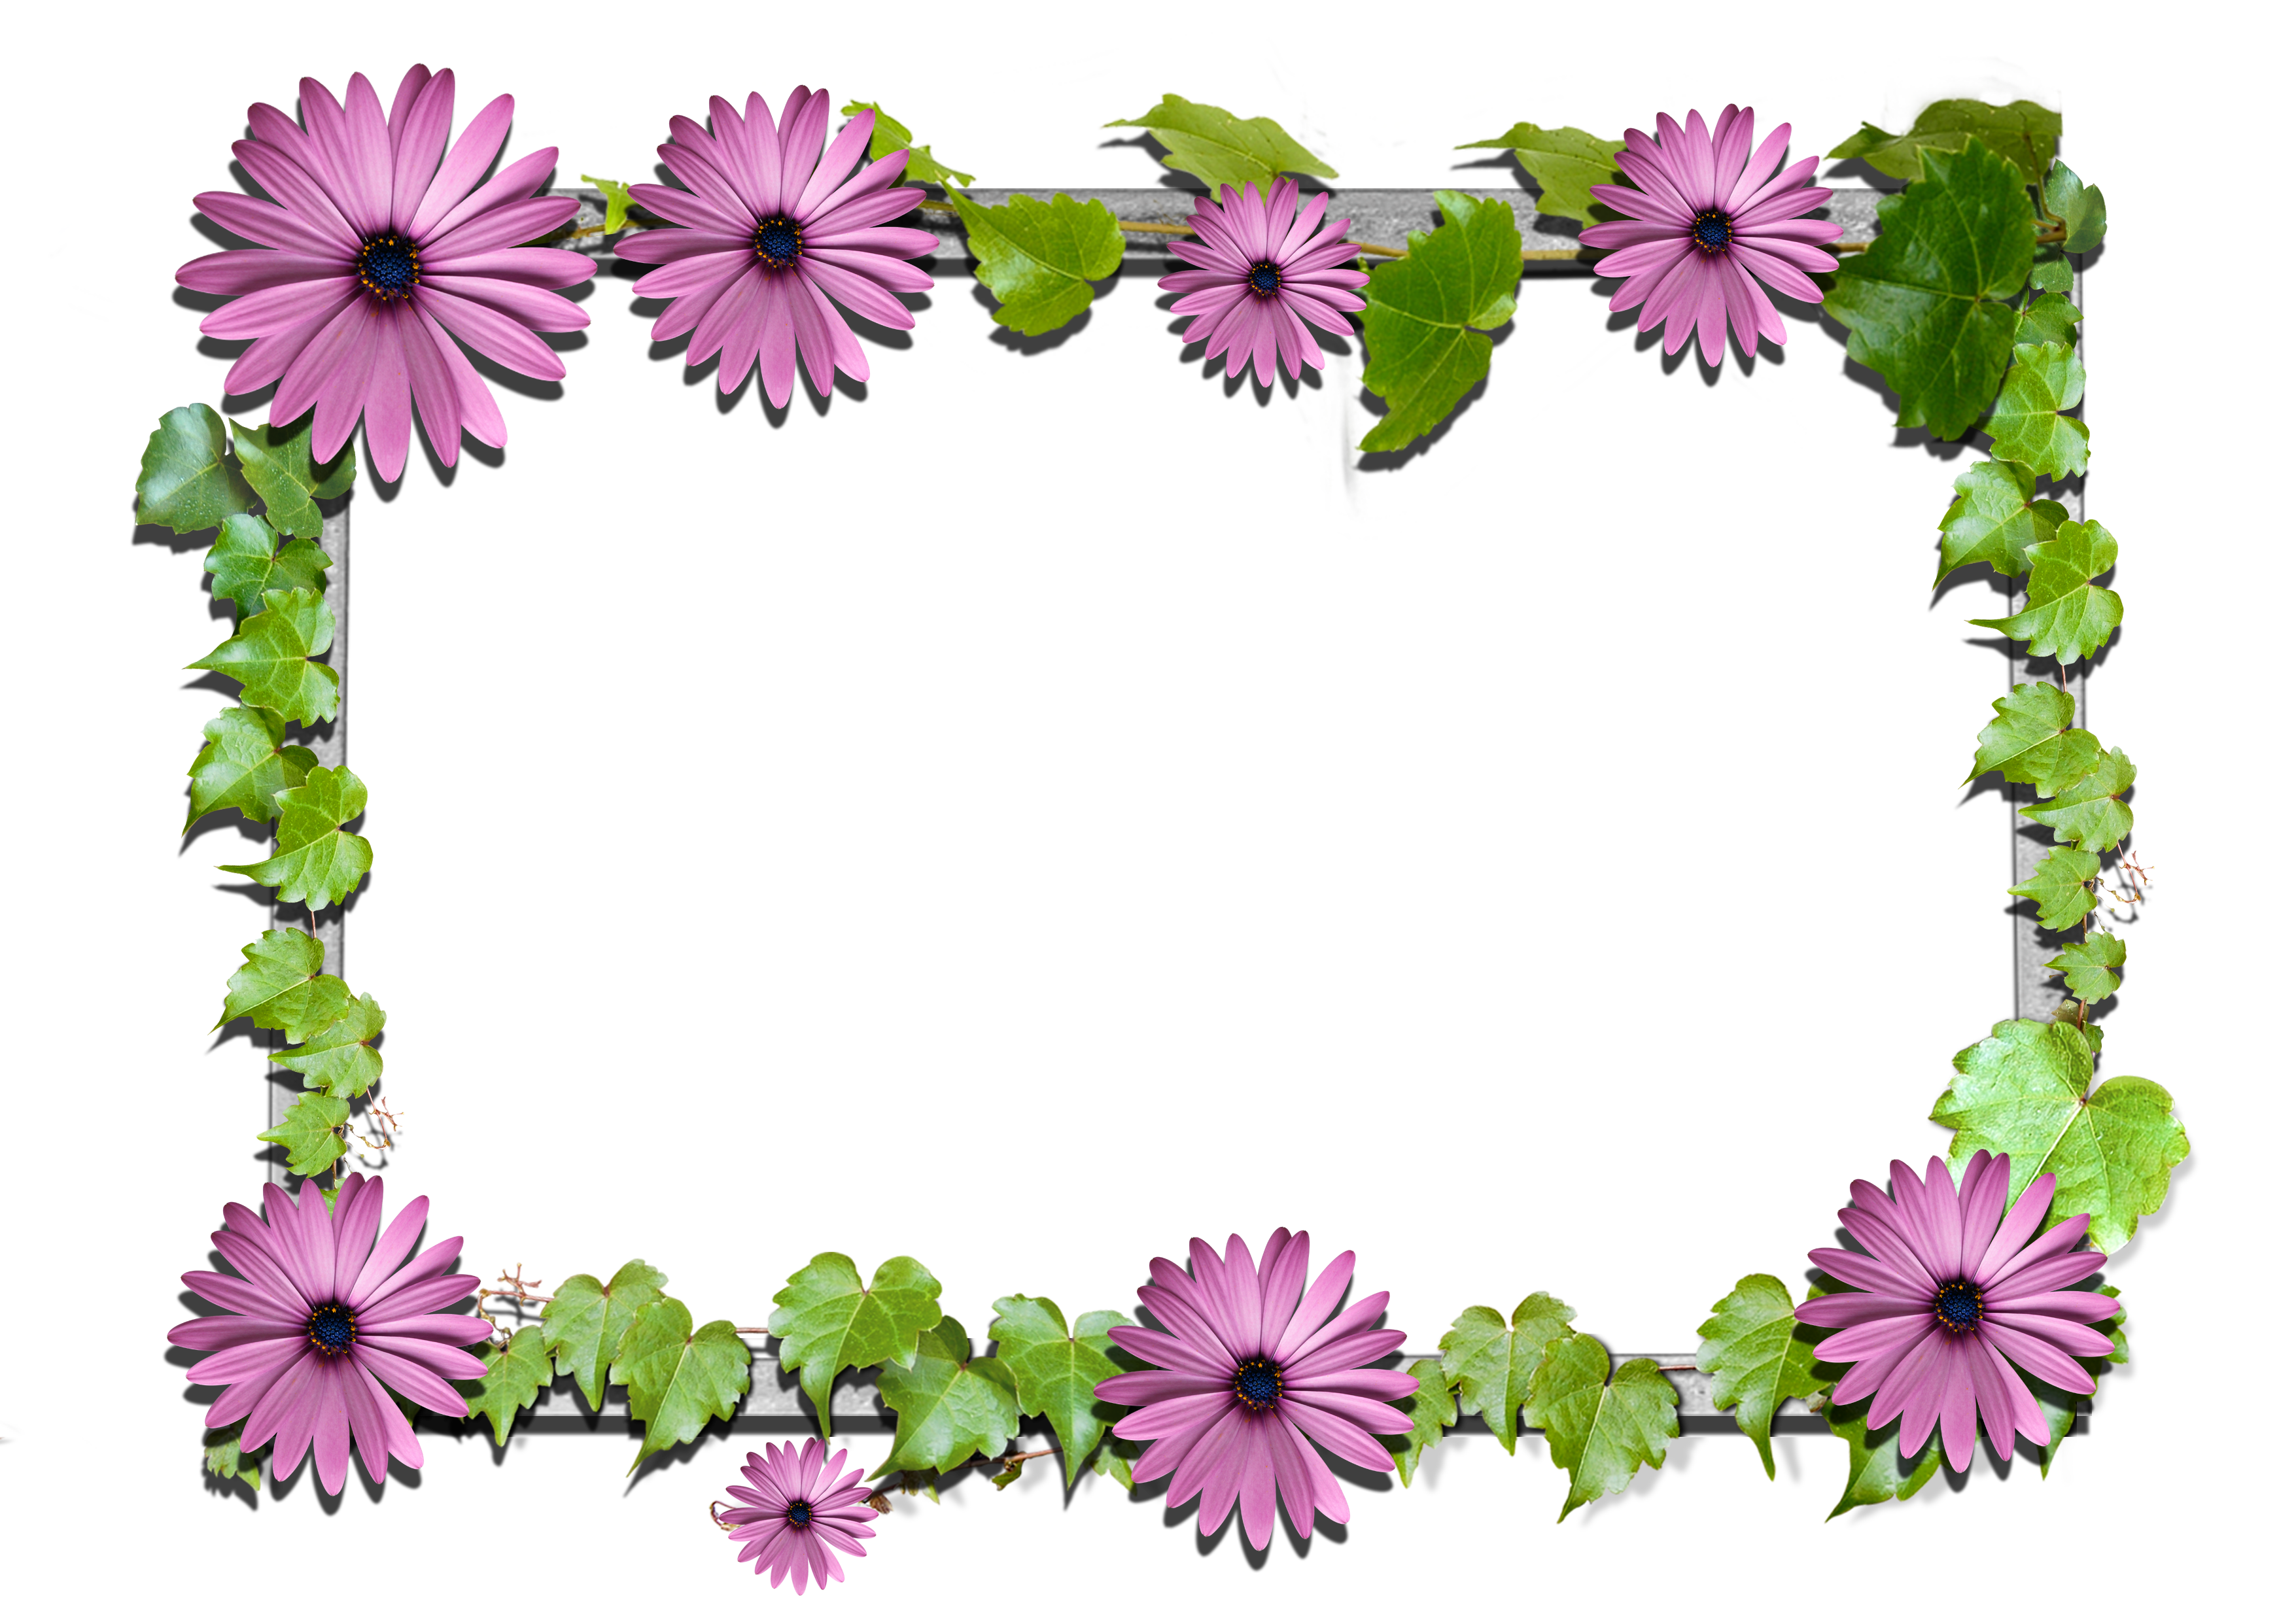 Flower frame png. Flowers gallery yopriceville high